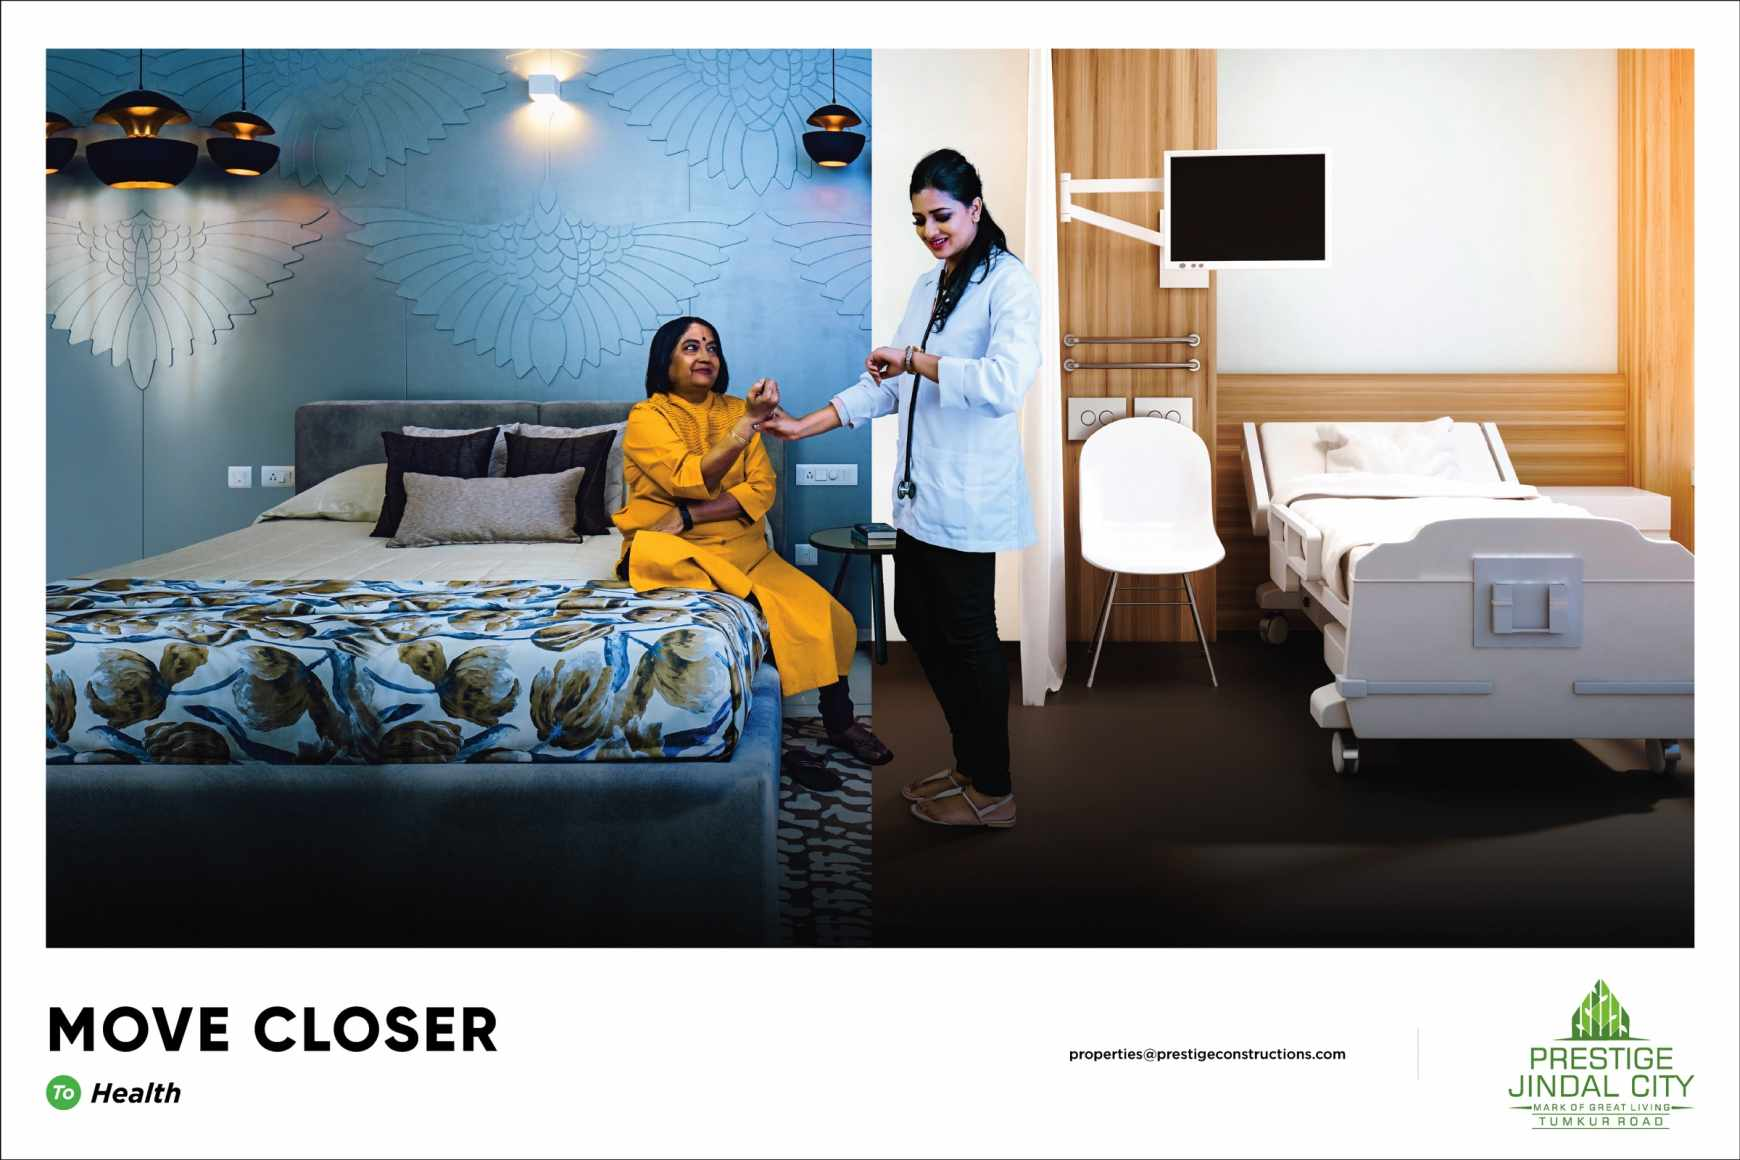 Prestige Jindal City Print Ad - Move Closer - Health